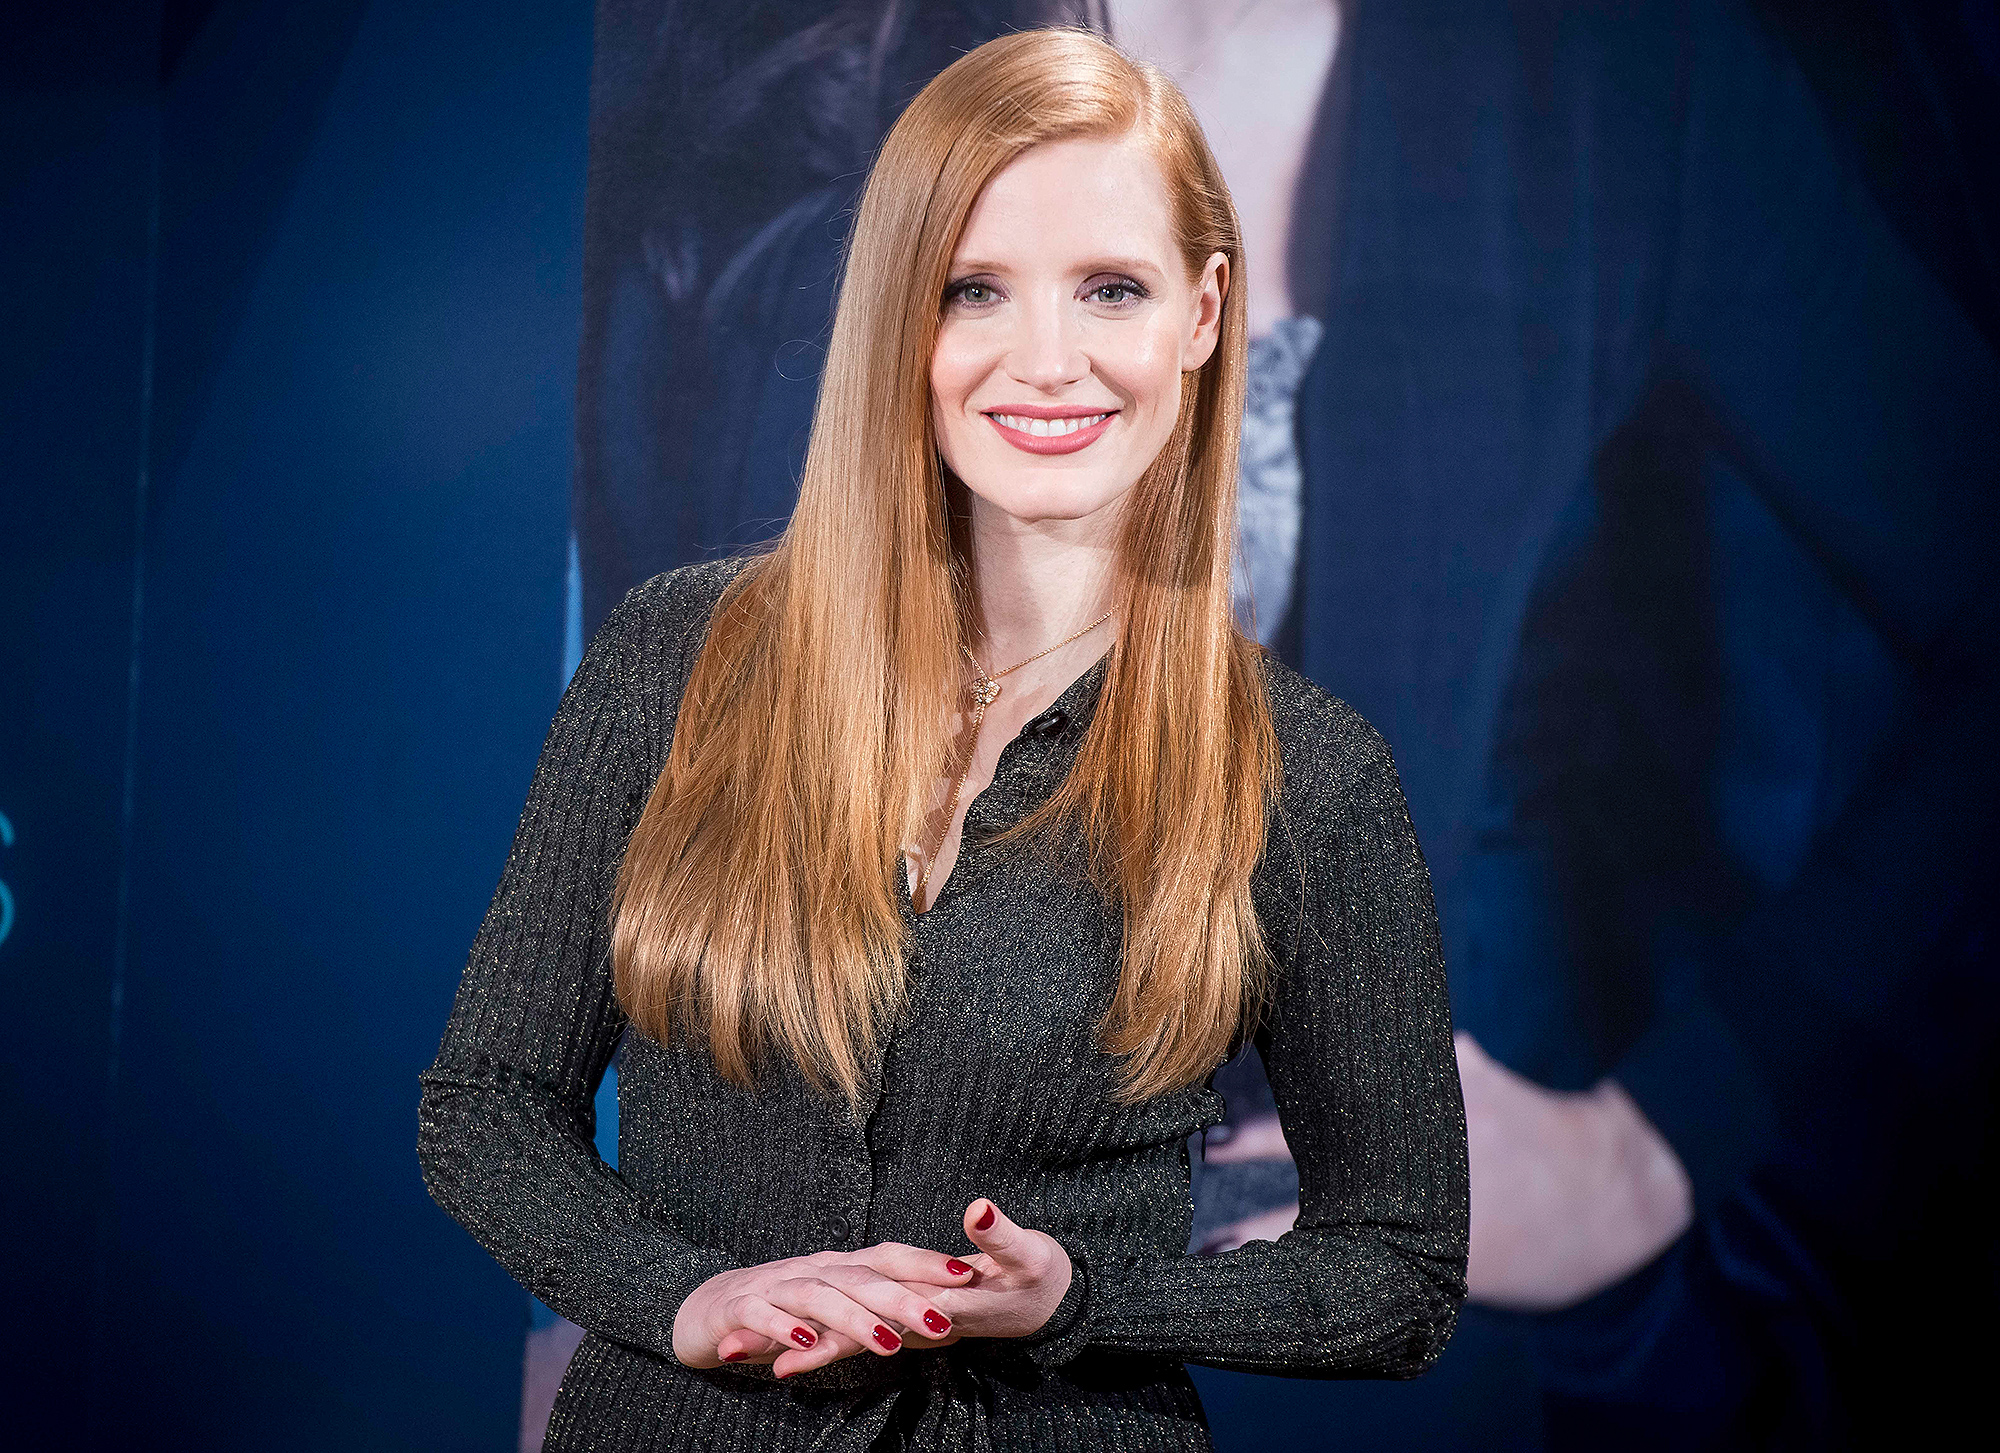 Jessica Chastain present Molly's Game in Madrid.